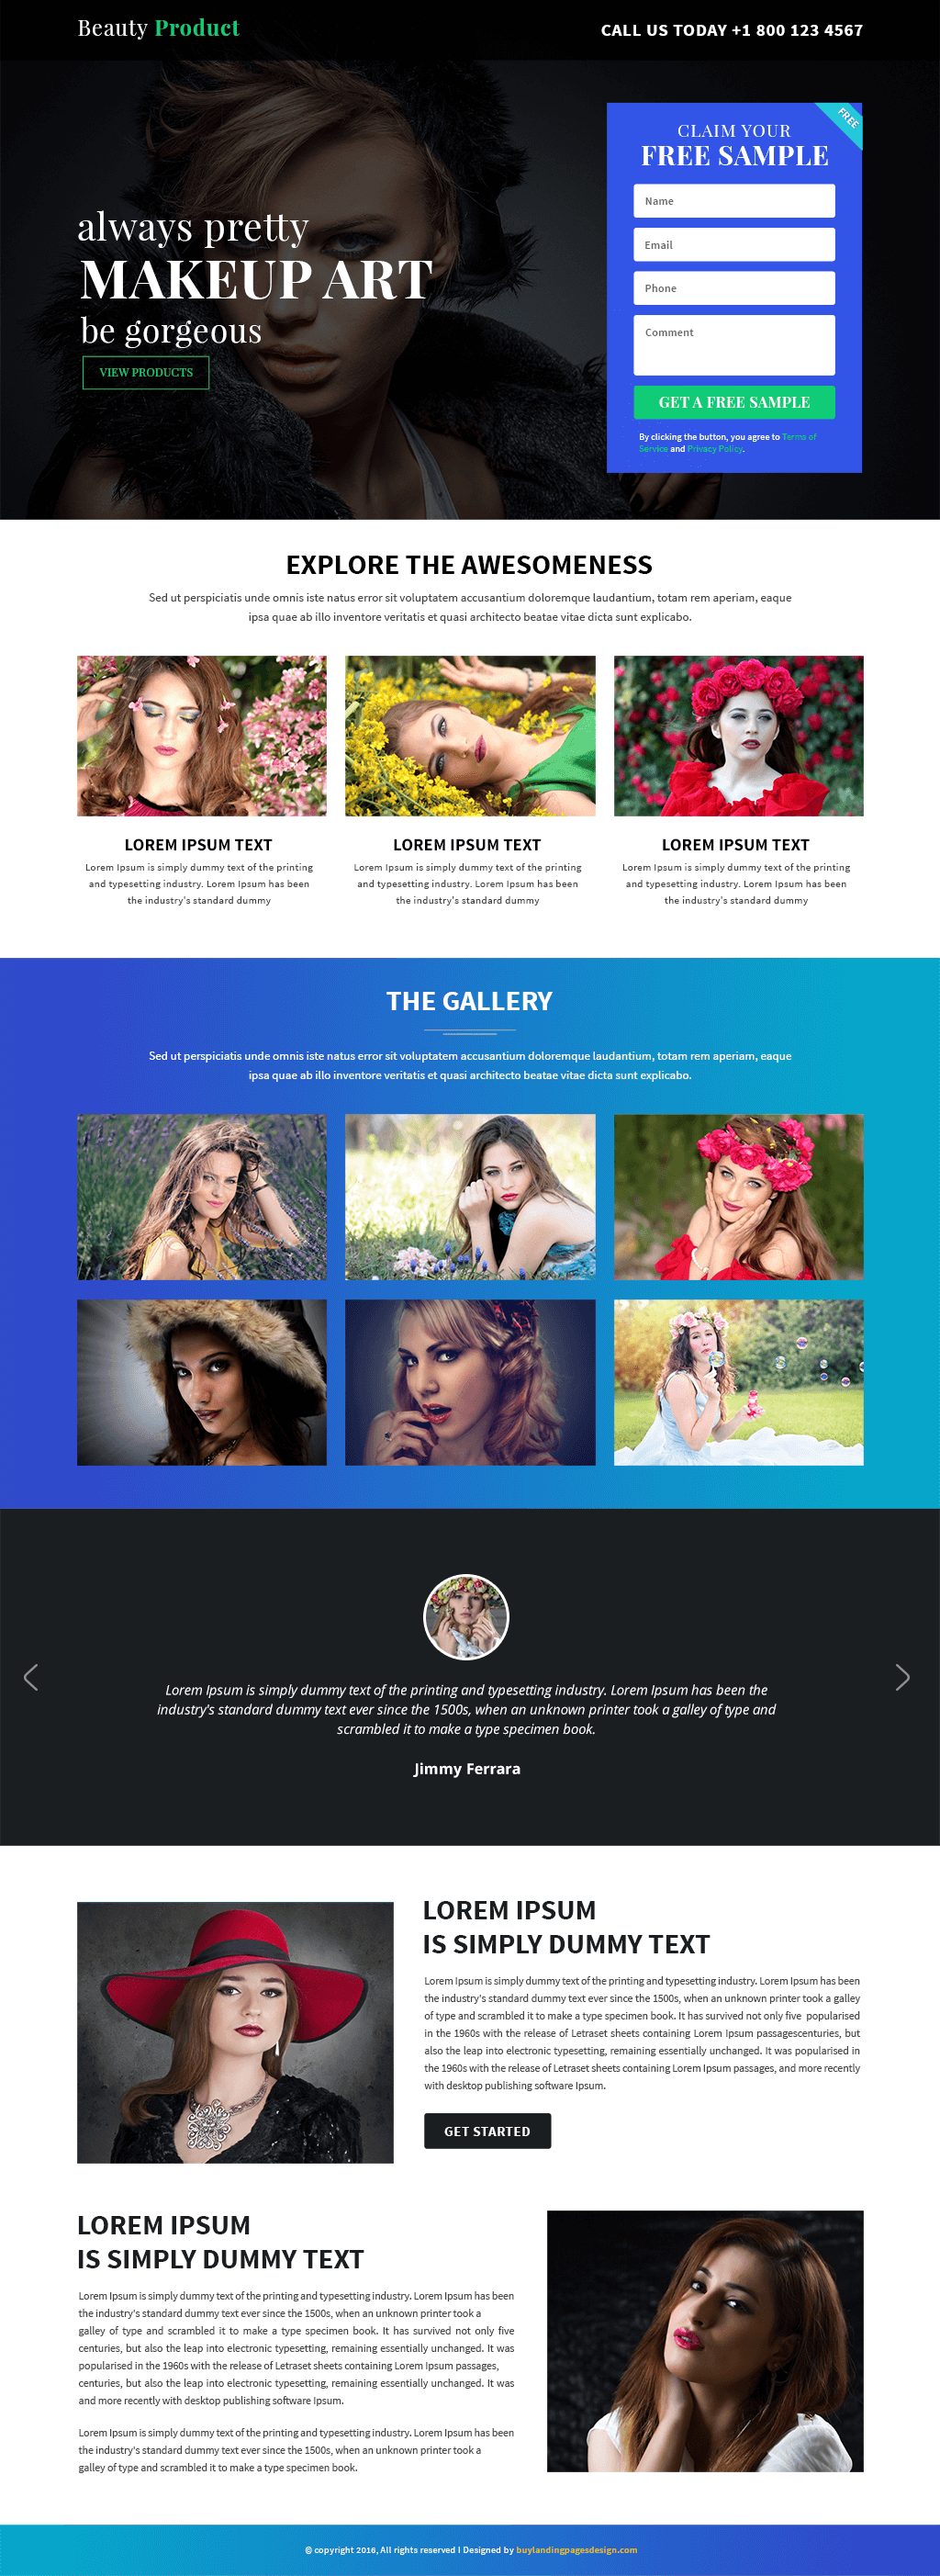 Responsive Beauty Product Landing Page Design Template